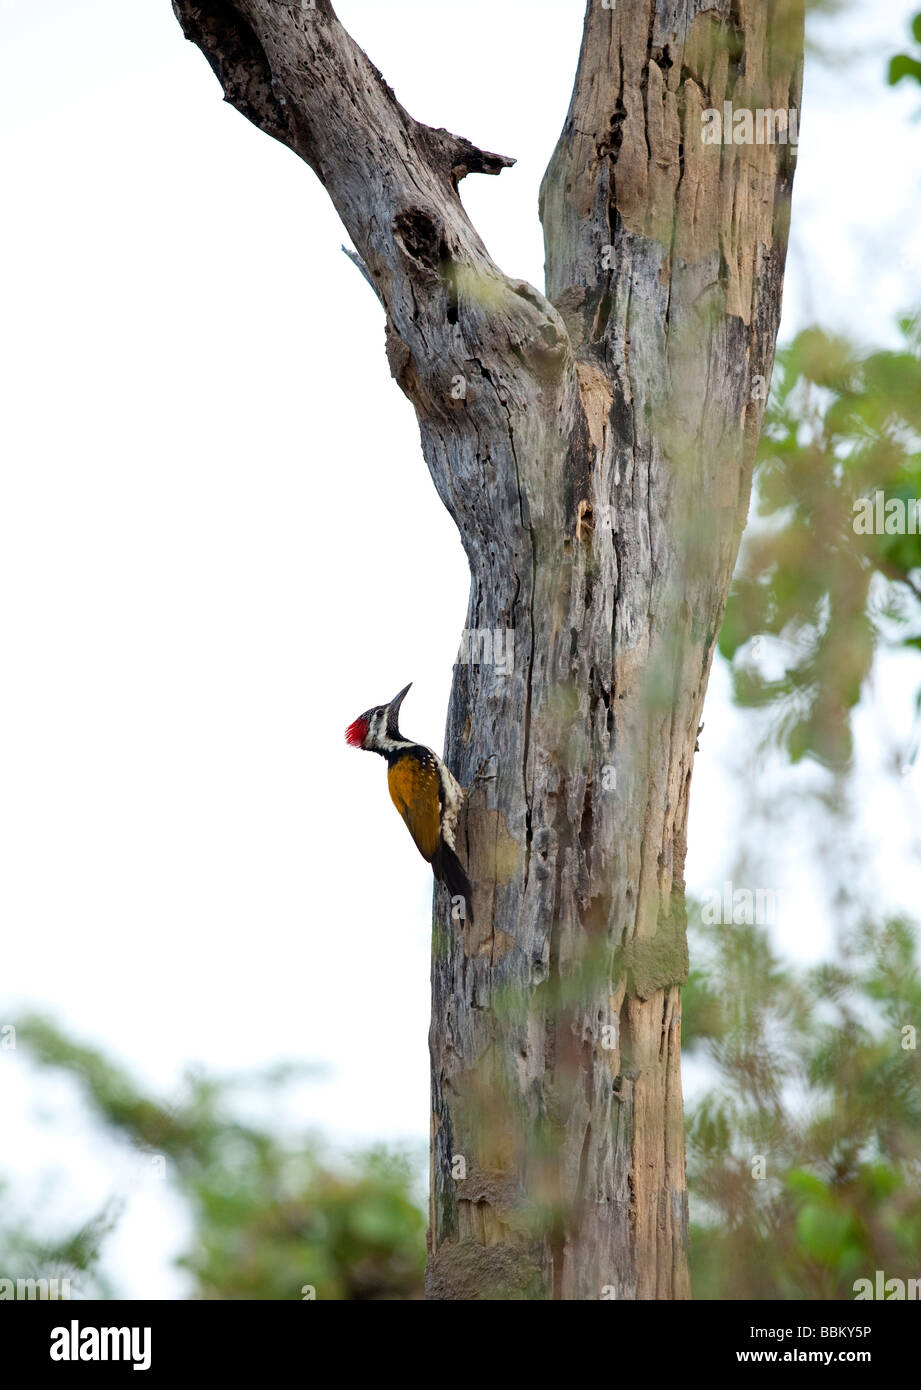 A woodpecker lands on a tree in Bandhavgarh National Park in Madhya Pradesh state, India. - Stock Image